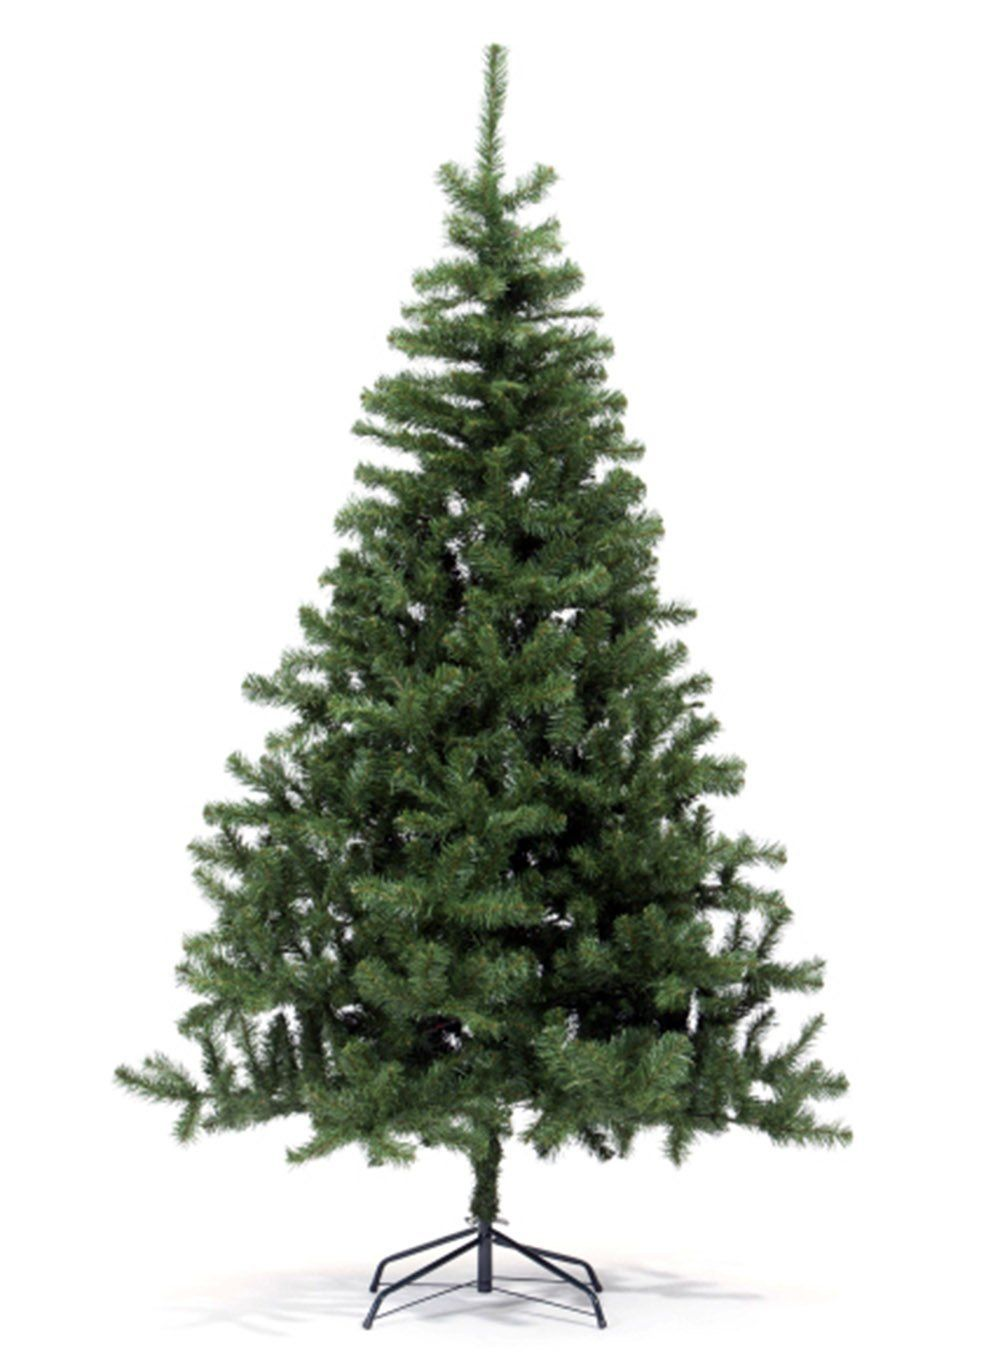 amazoncom 65 foot unlit jack spruce artificial christmas tree - Amazon Artificial Christmas Trees